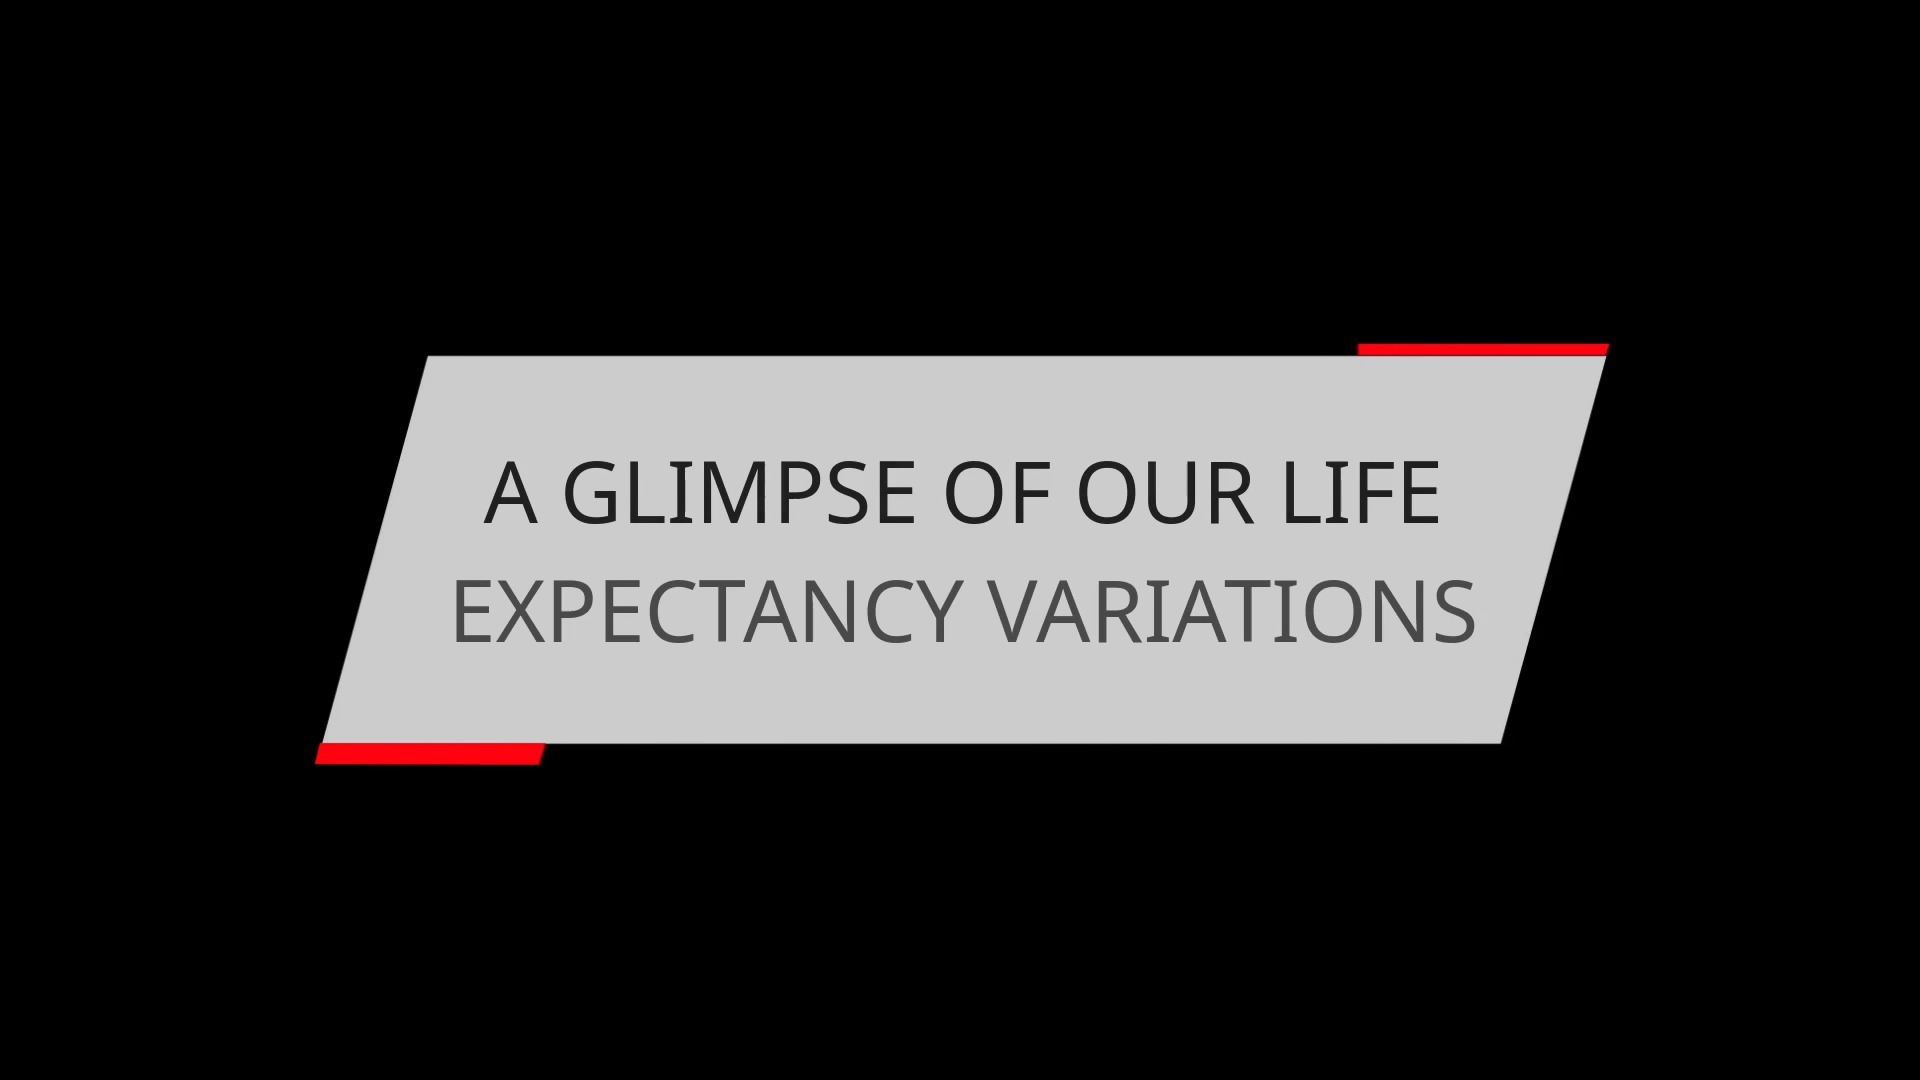 A GLIMPSE OF OUR LIFE EXPECTANCY VARIATIONS